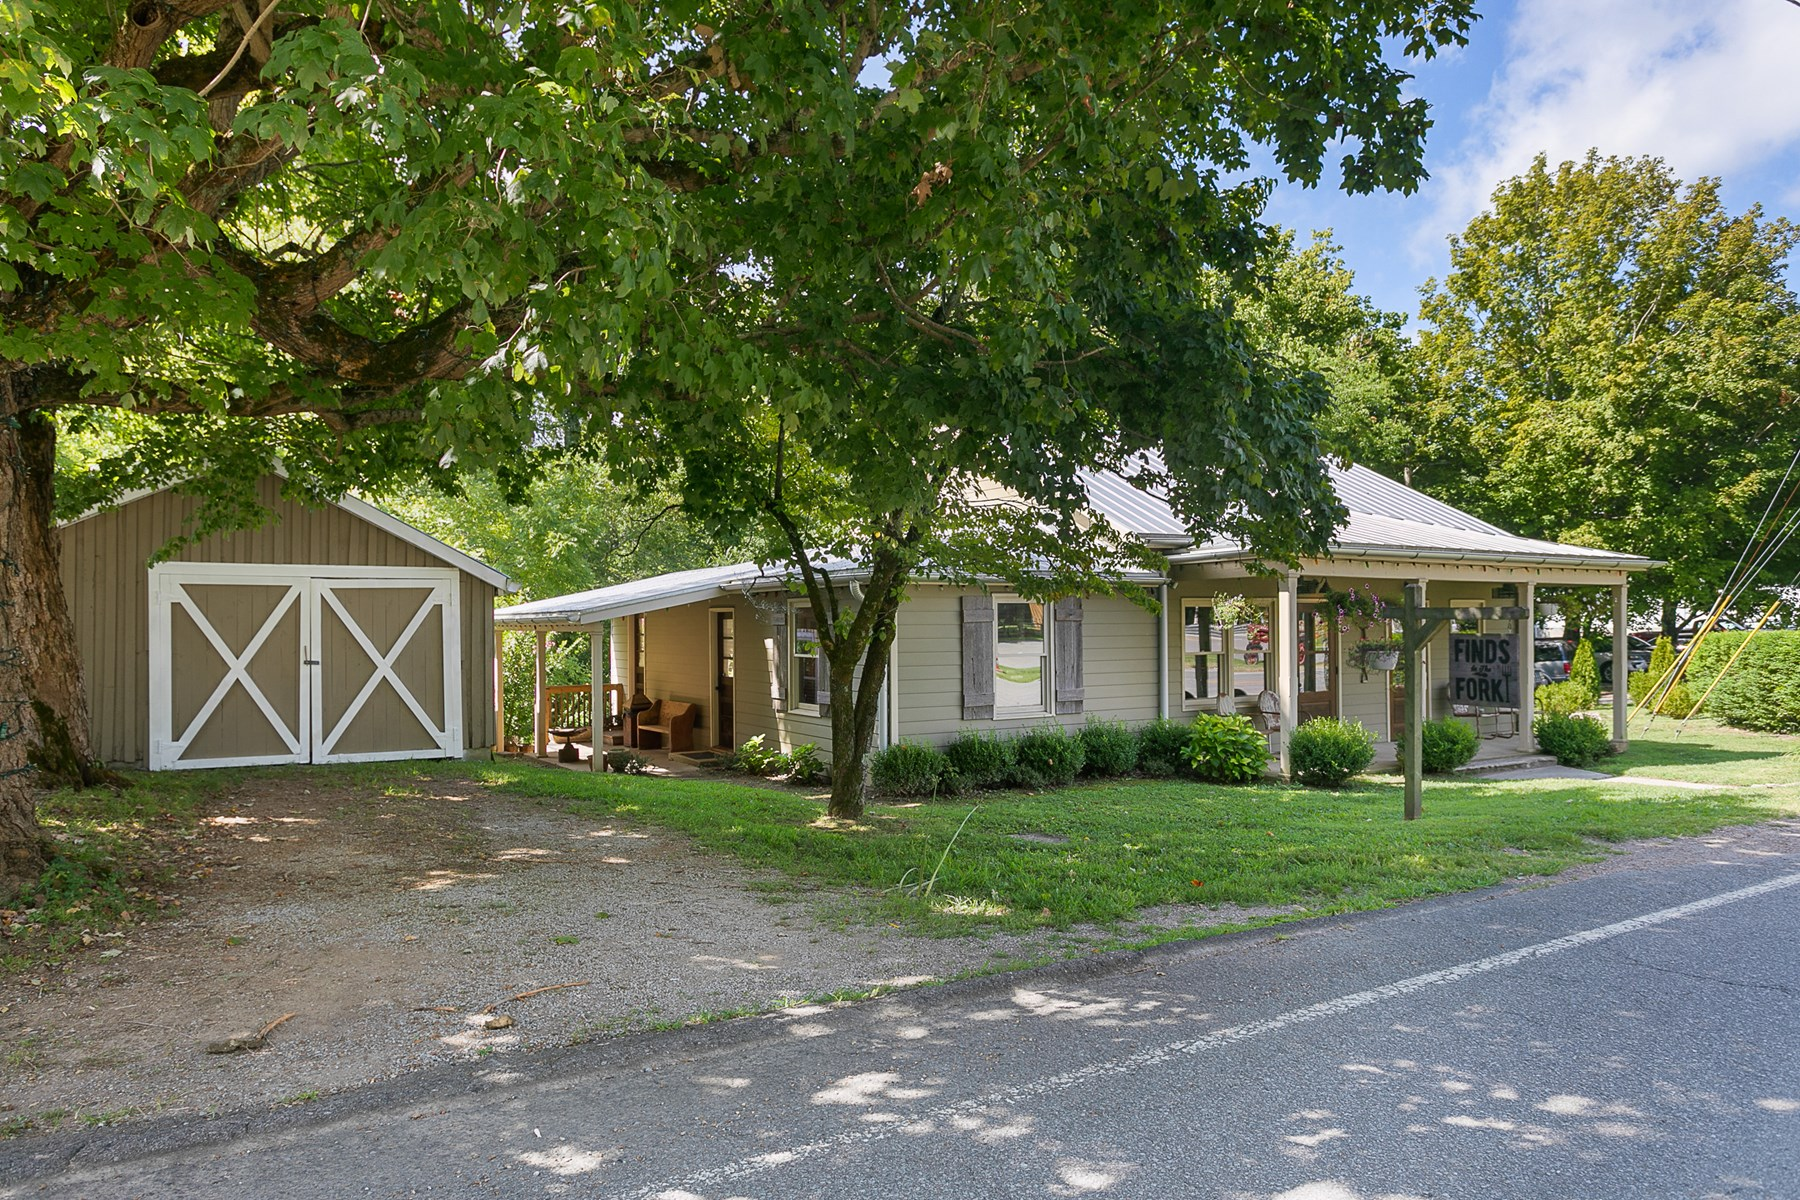 Village of Leipers Fork